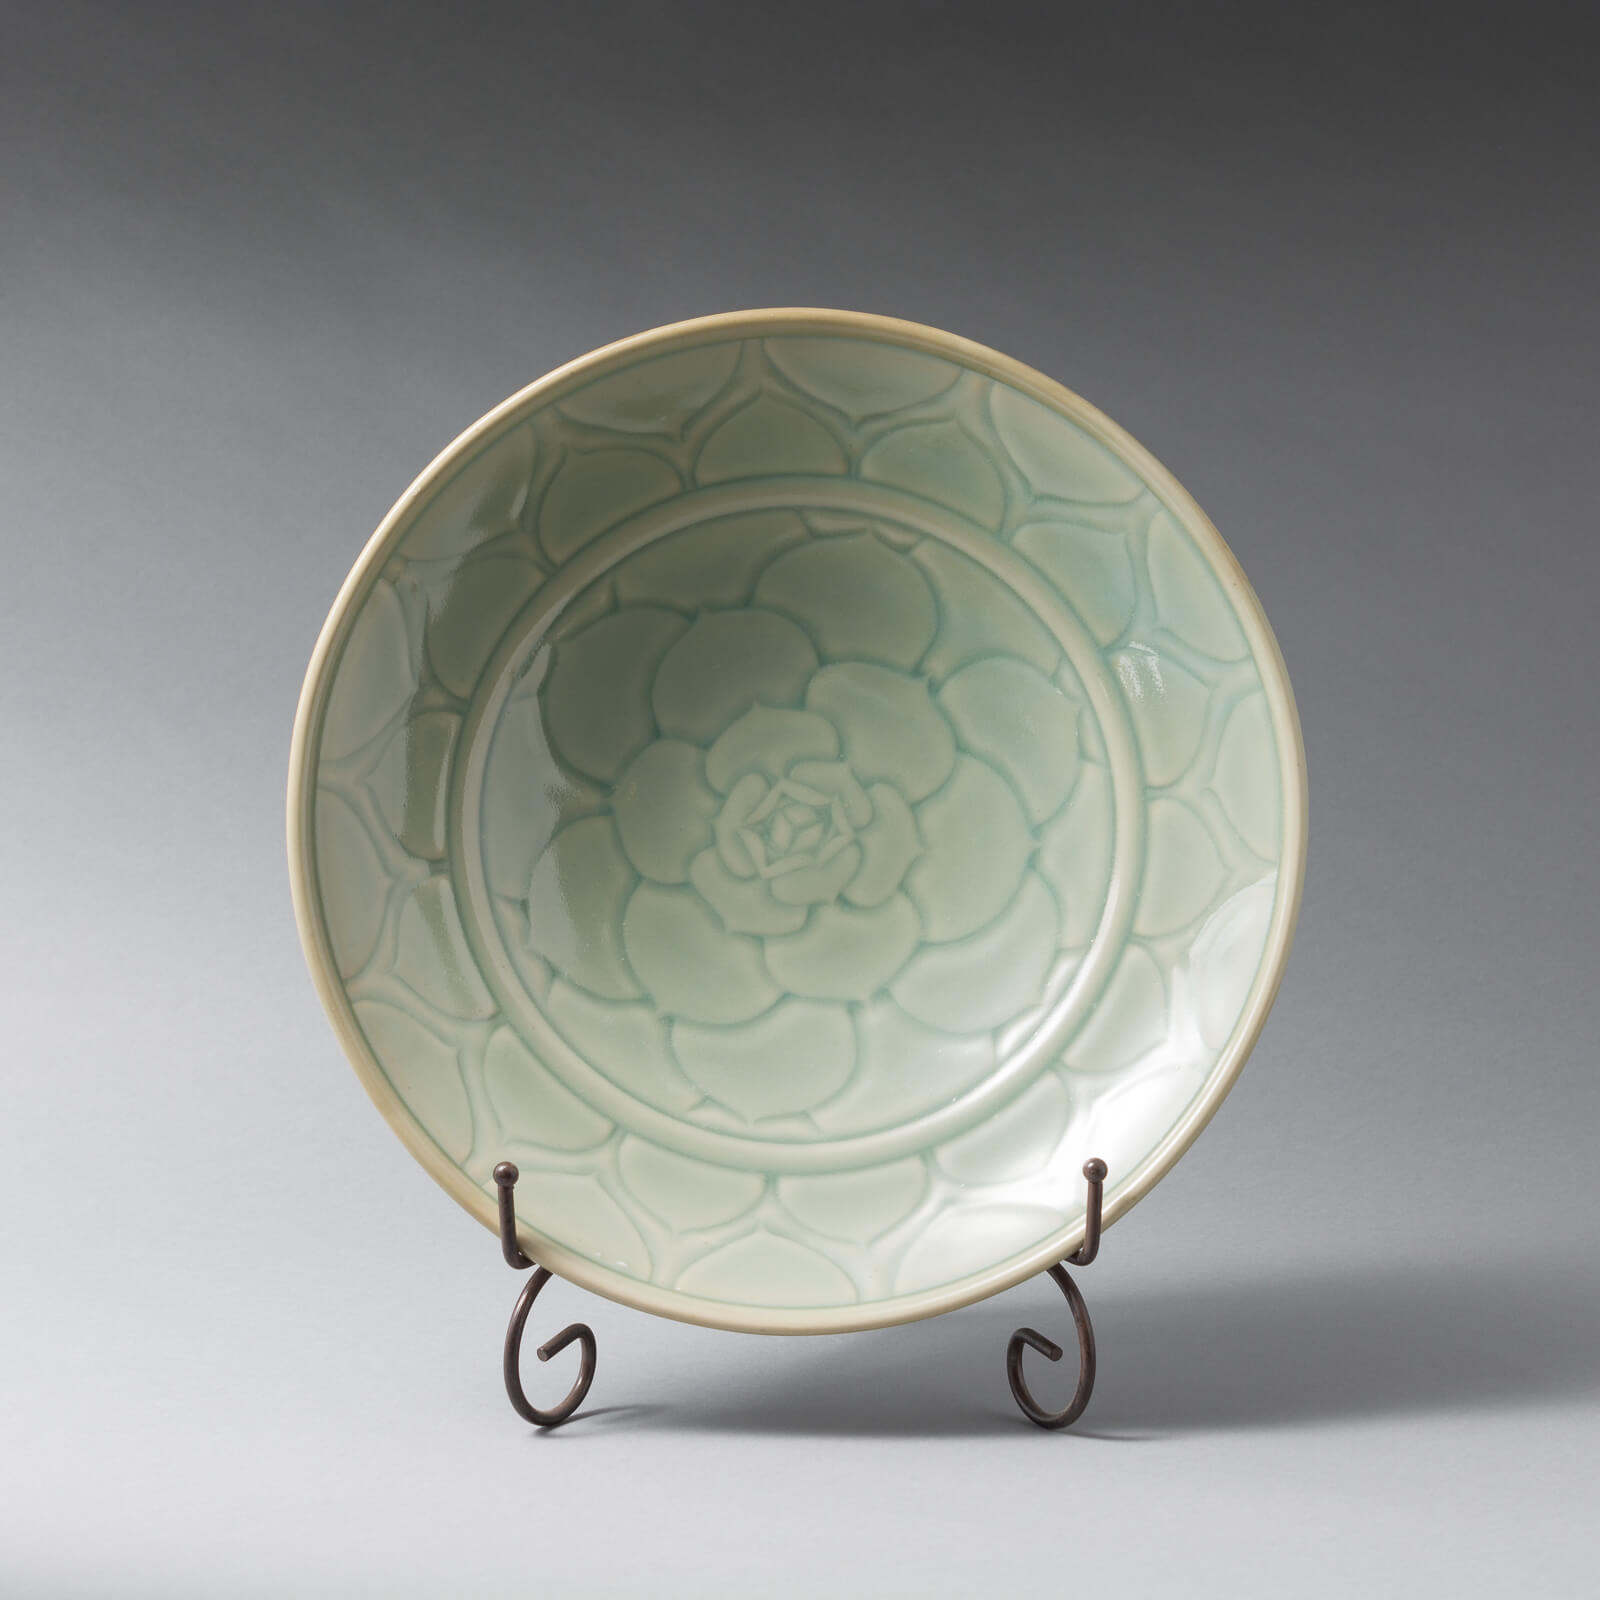 Echeveria Plate, carved Porcelain